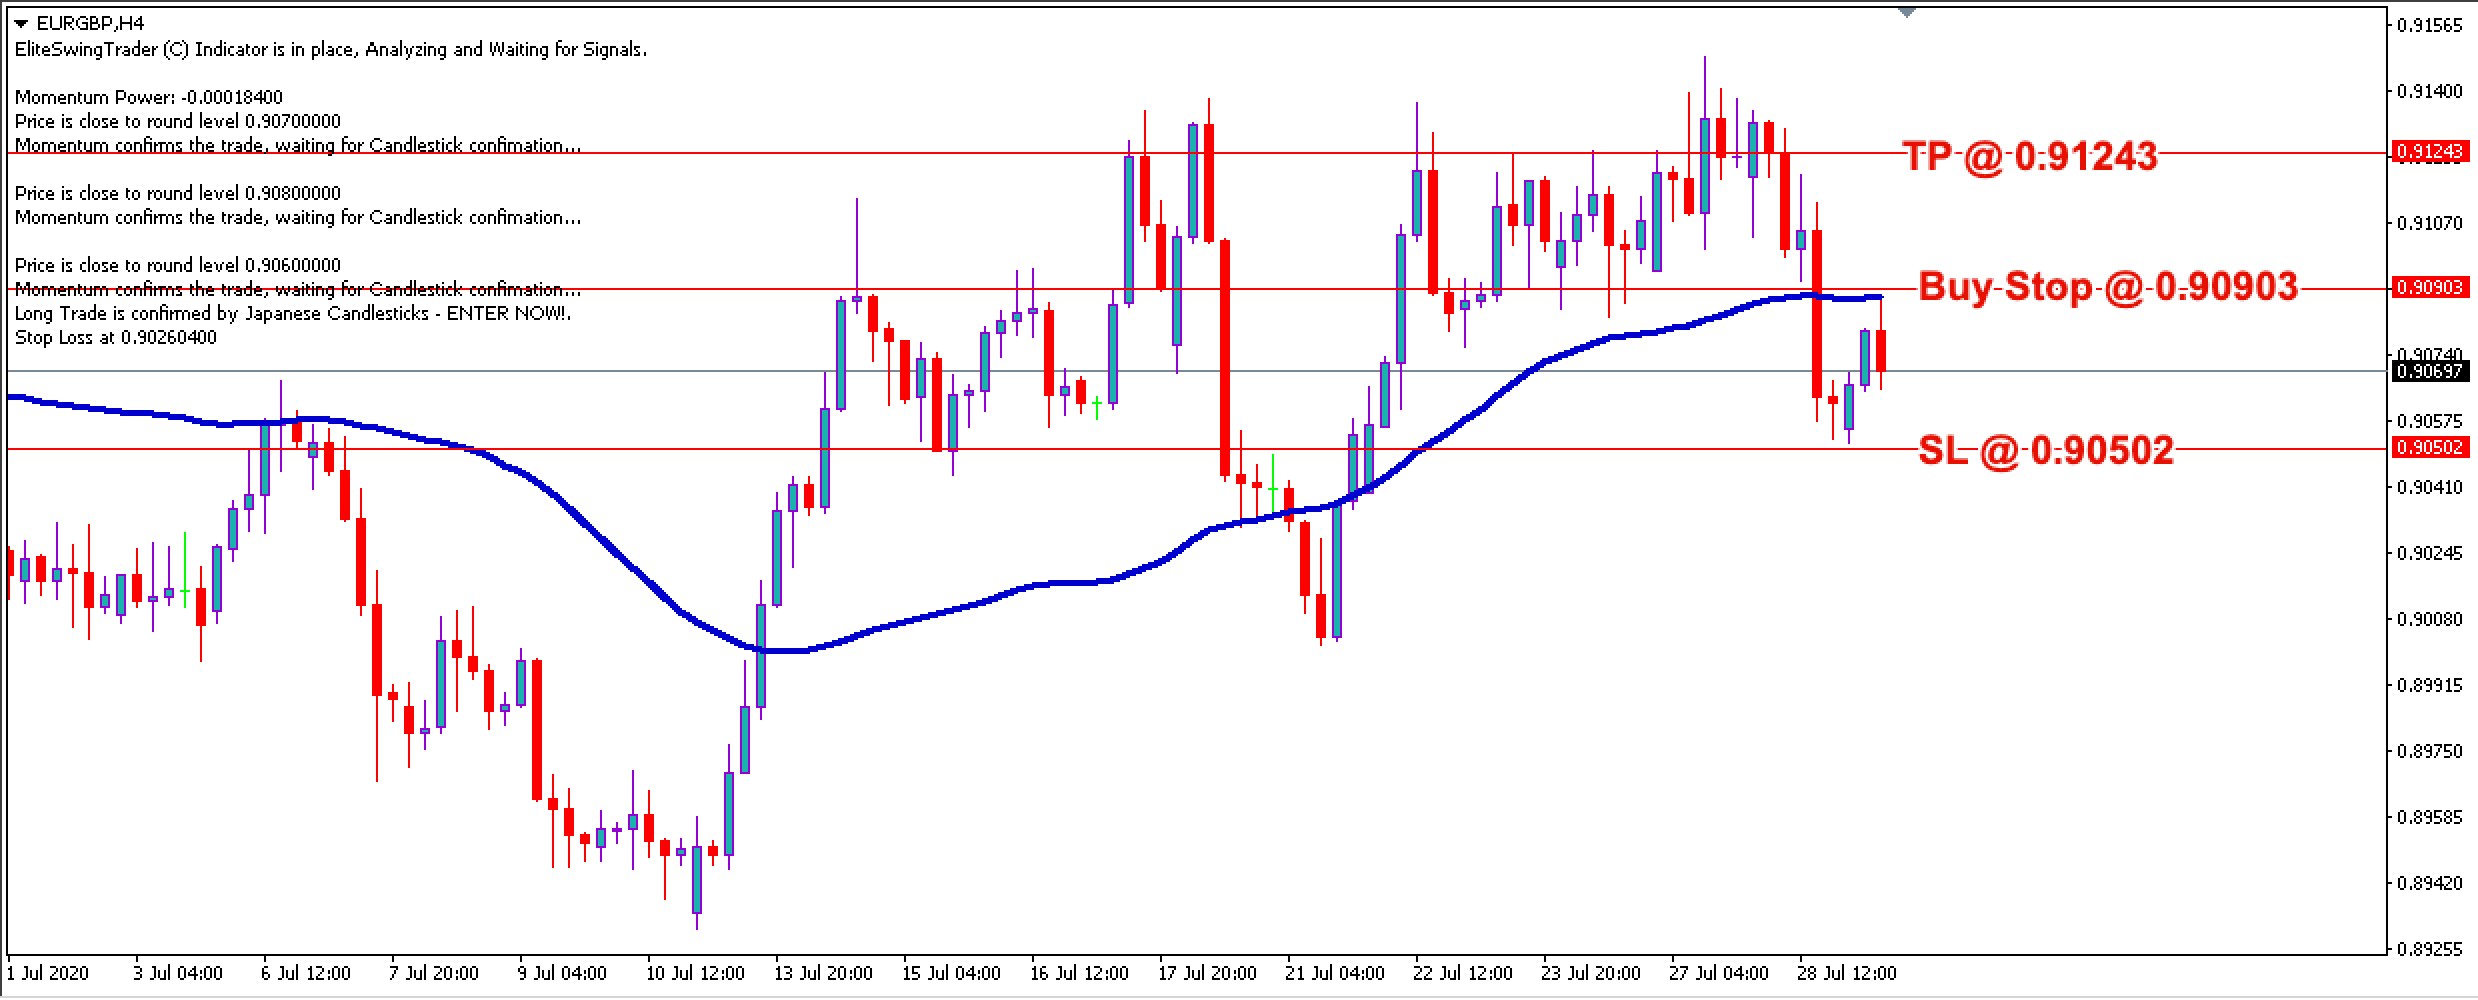 EUR/GBP Daily Price Forecast - 29th July 2020